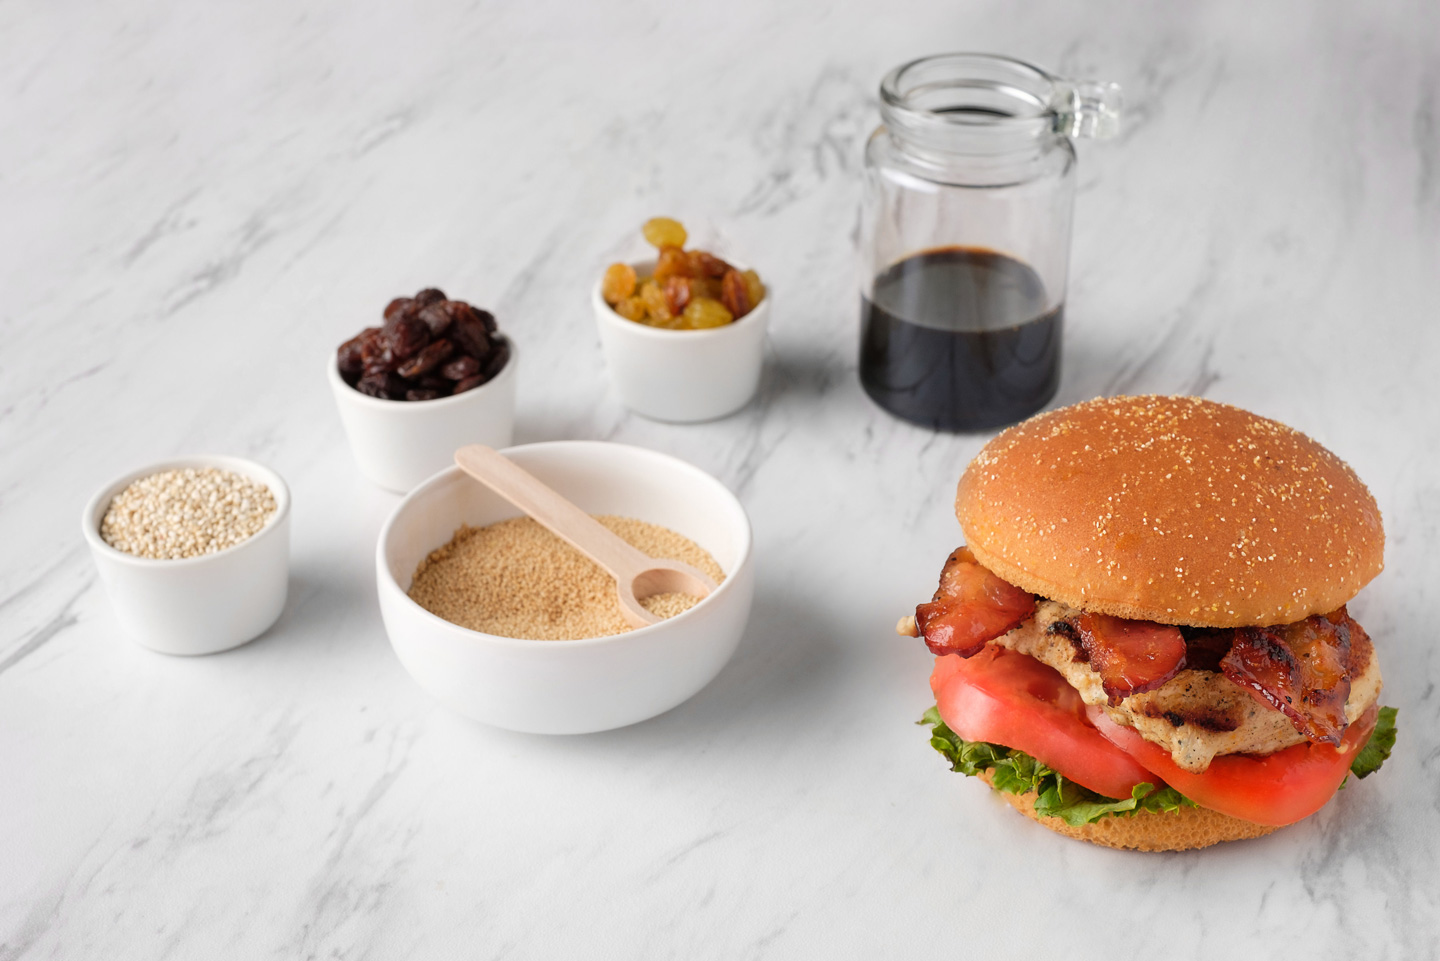 chick fil a introduces new gluten free bun chick fil a